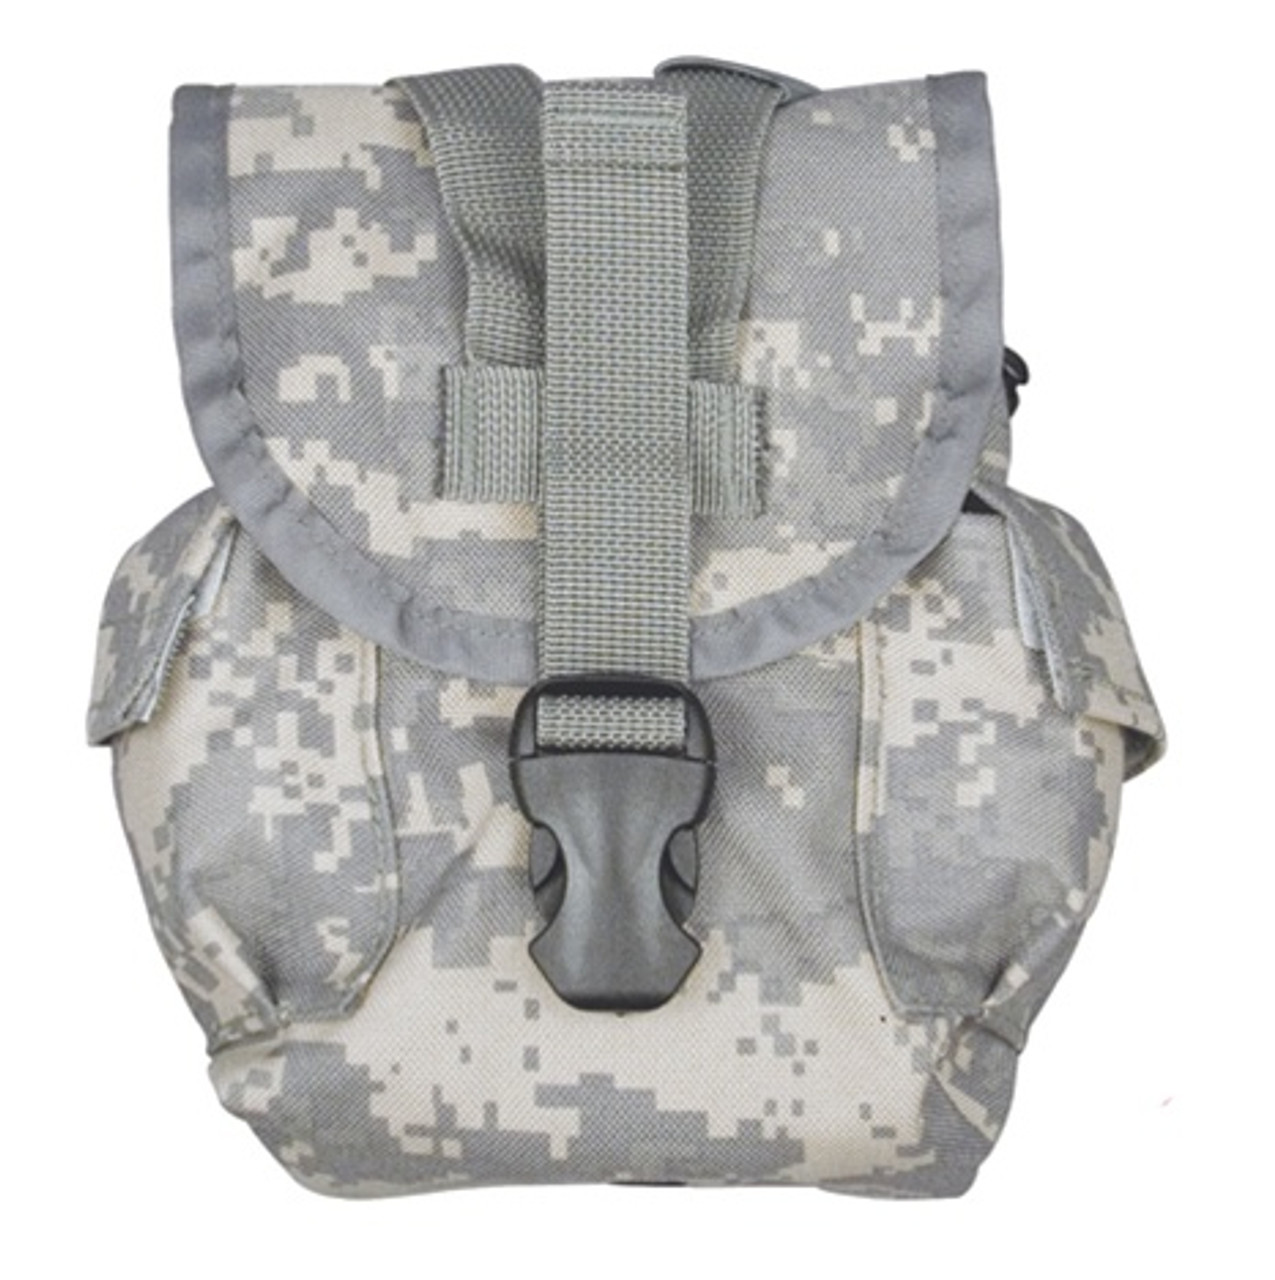 MOLLE pouch for the 1 Quart canteen and canteen cup.  ACU camouflage.  MILSPEC materials and construction.